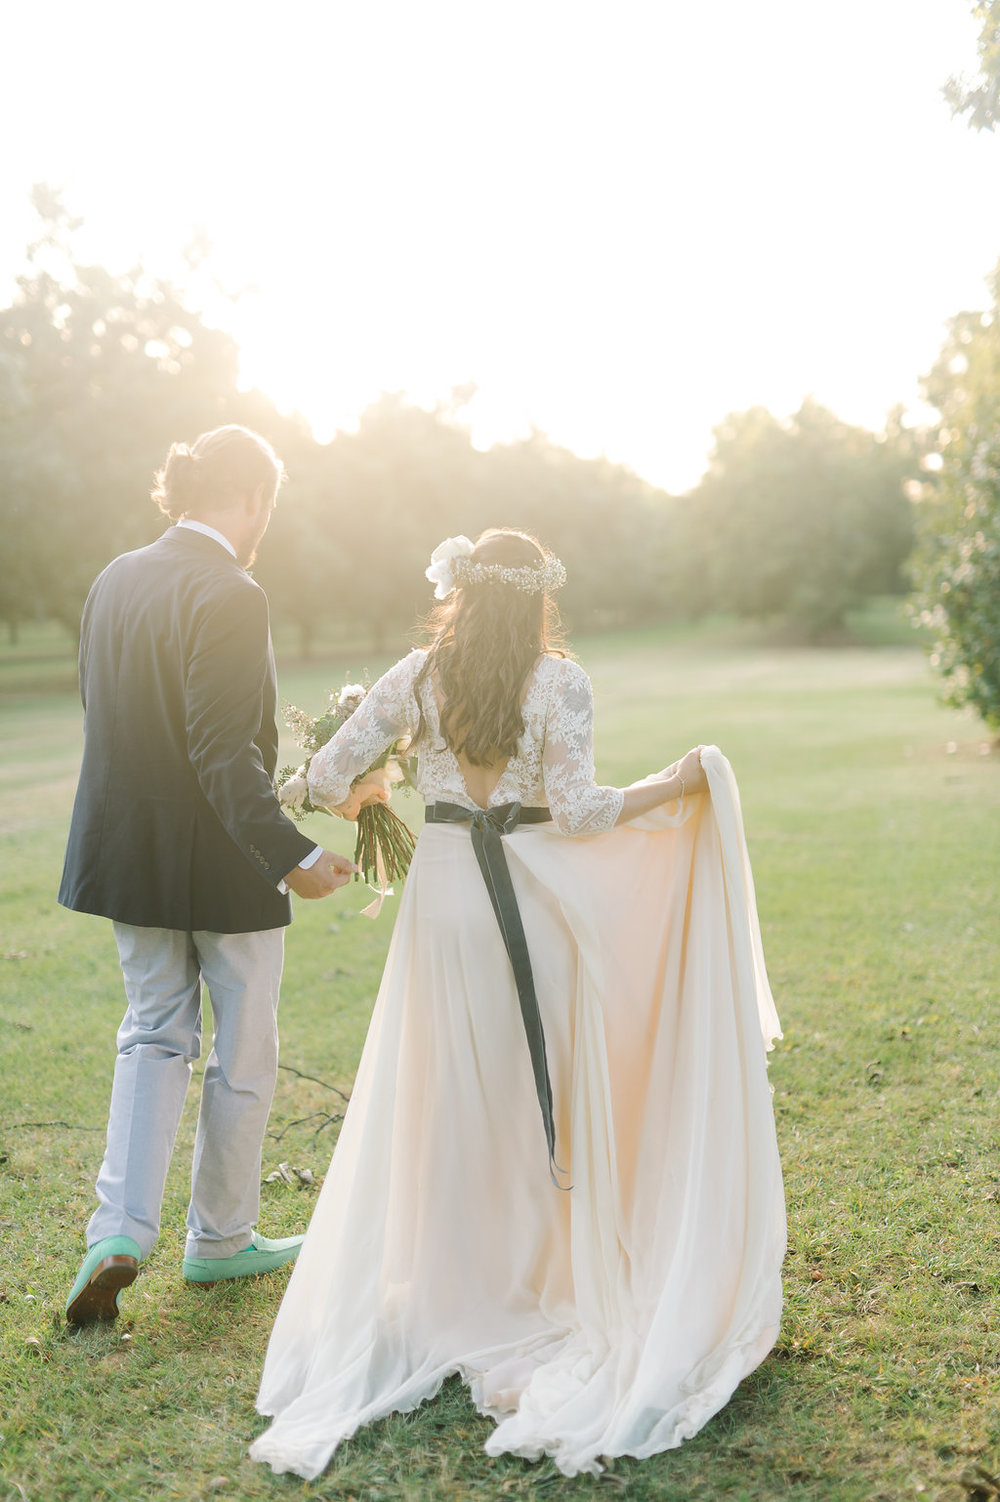 rach-loves-troy-photography-atlanta-wedding-pineola-farms-wedding-cat-wedding-rebecca-shoneveld-vivian-sage-ivory-and-beau-bridal-boutique-savannah-wedding-dresses-savannah-bridal-boutique-savannah-bridal-gowns-savannah-florist-georgia-bridal-31.jpg